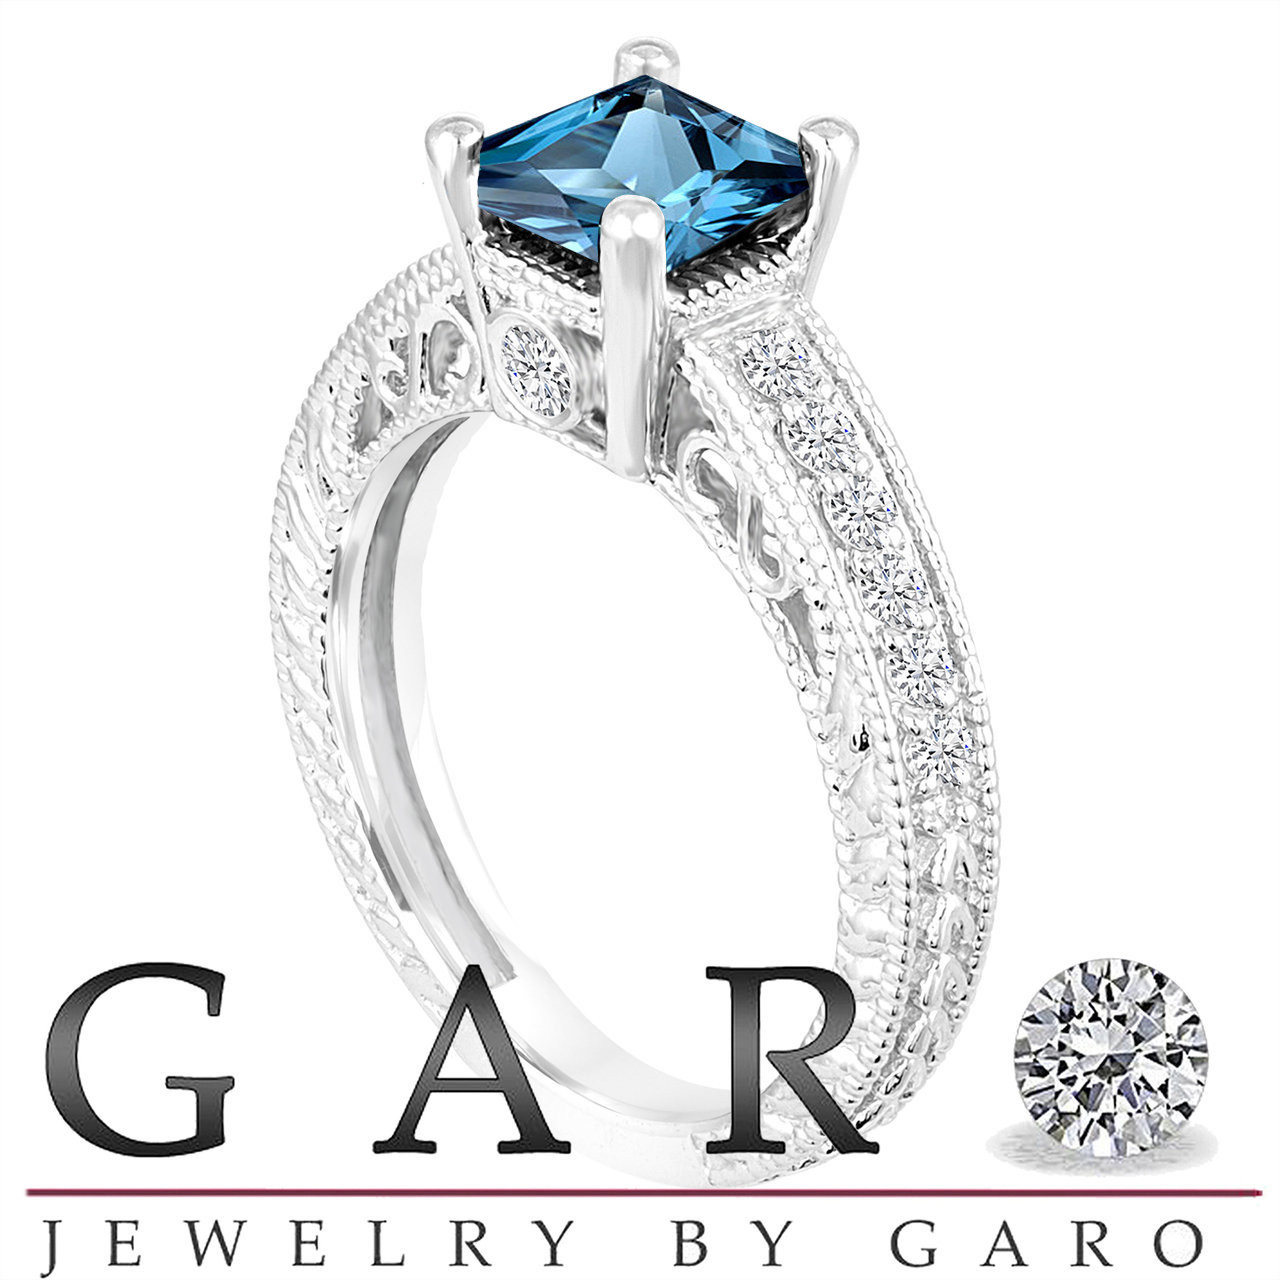 Jewelry & Watches 1.37 Ct Blue Topaz And Diamonds Ring 14k White Gold Natural With Latest Technology Fine Jewelry Sets